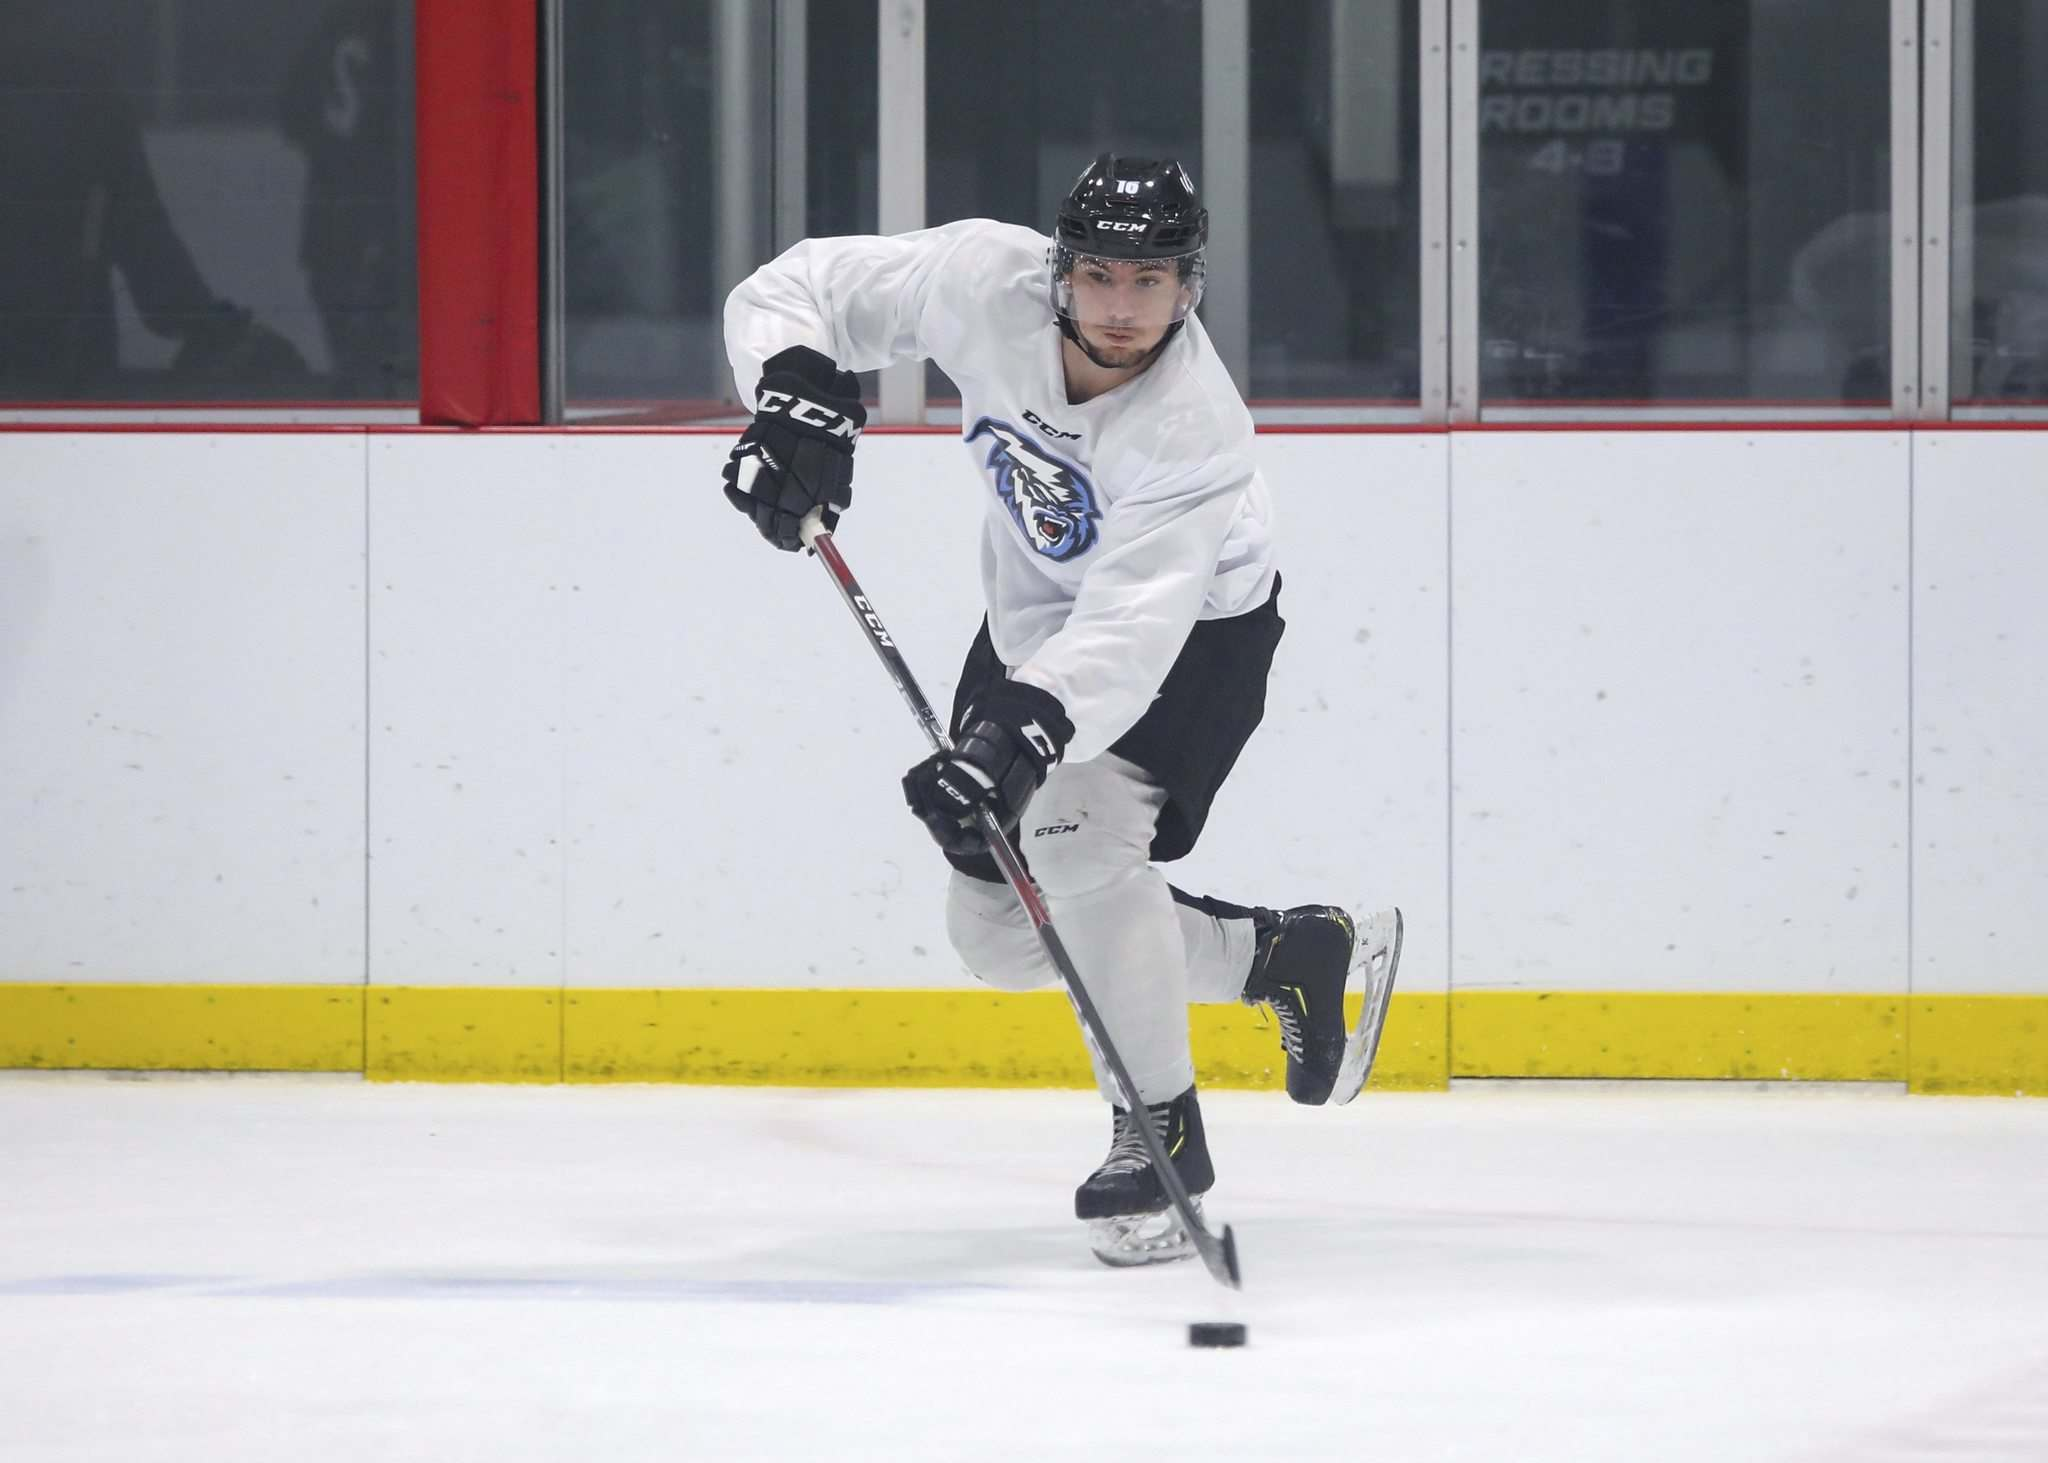 SASHA SEFTER / WINNIPEG FREE PRESS</p><p>The Ice's Nino Kinder takes part in training-camp drills Thursday at the Rink Training Centre.</p>